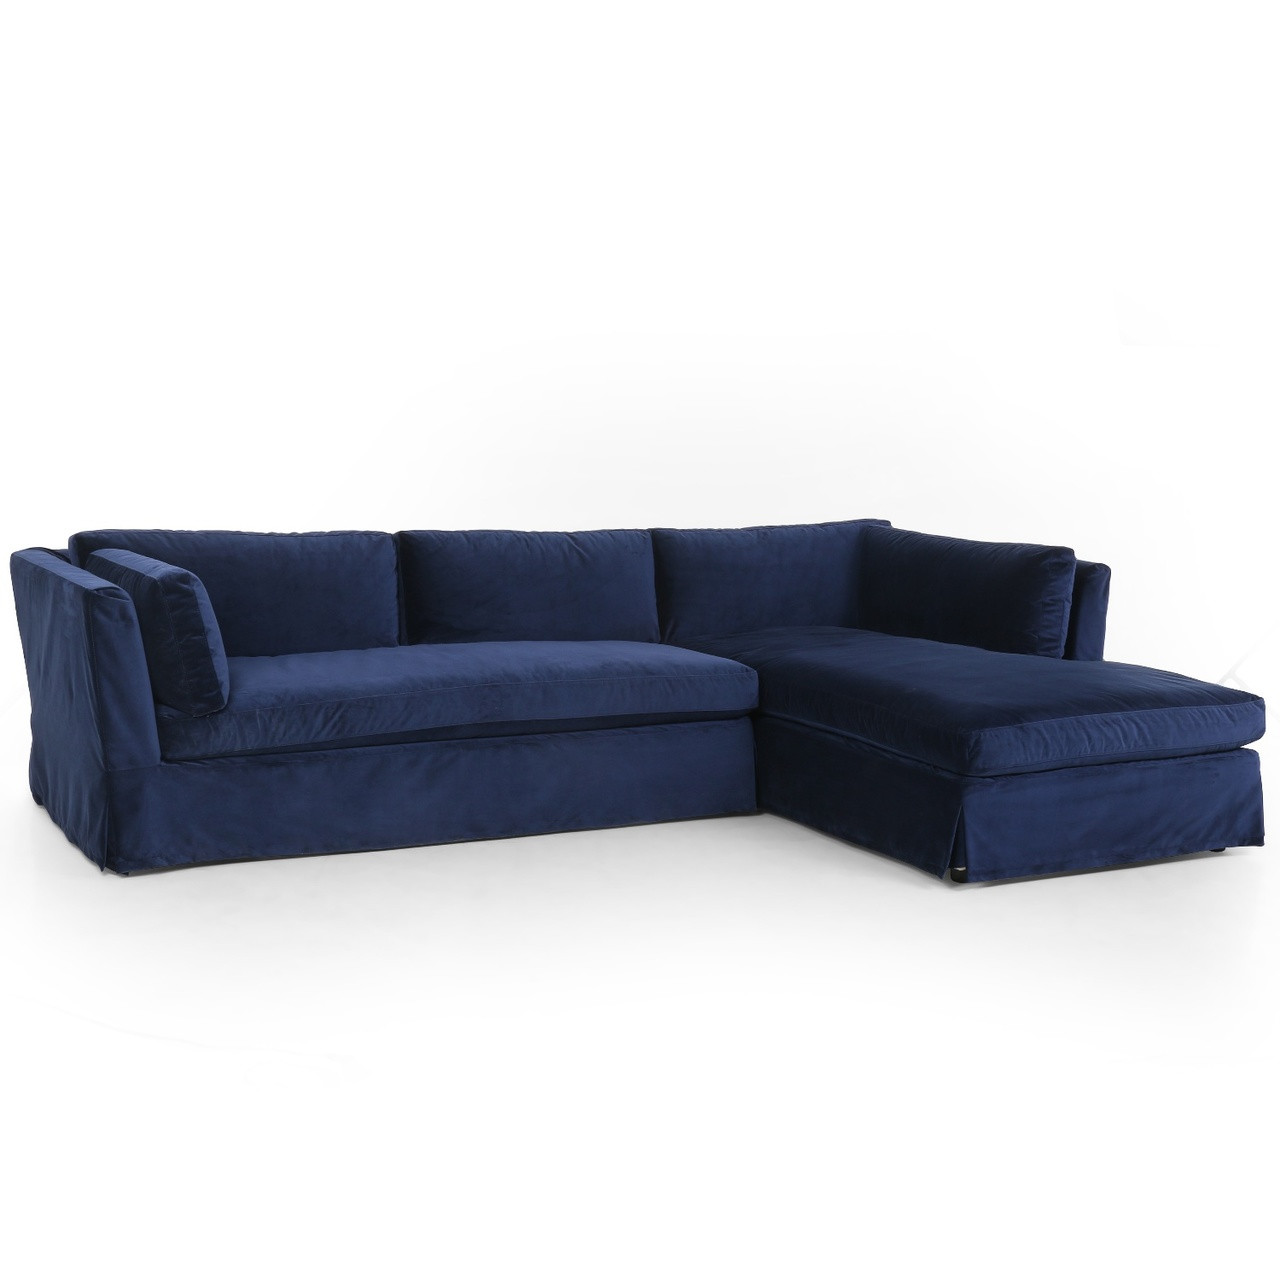 Garrison Coastal Navy Velvet Slipcovered Sectional Sofa